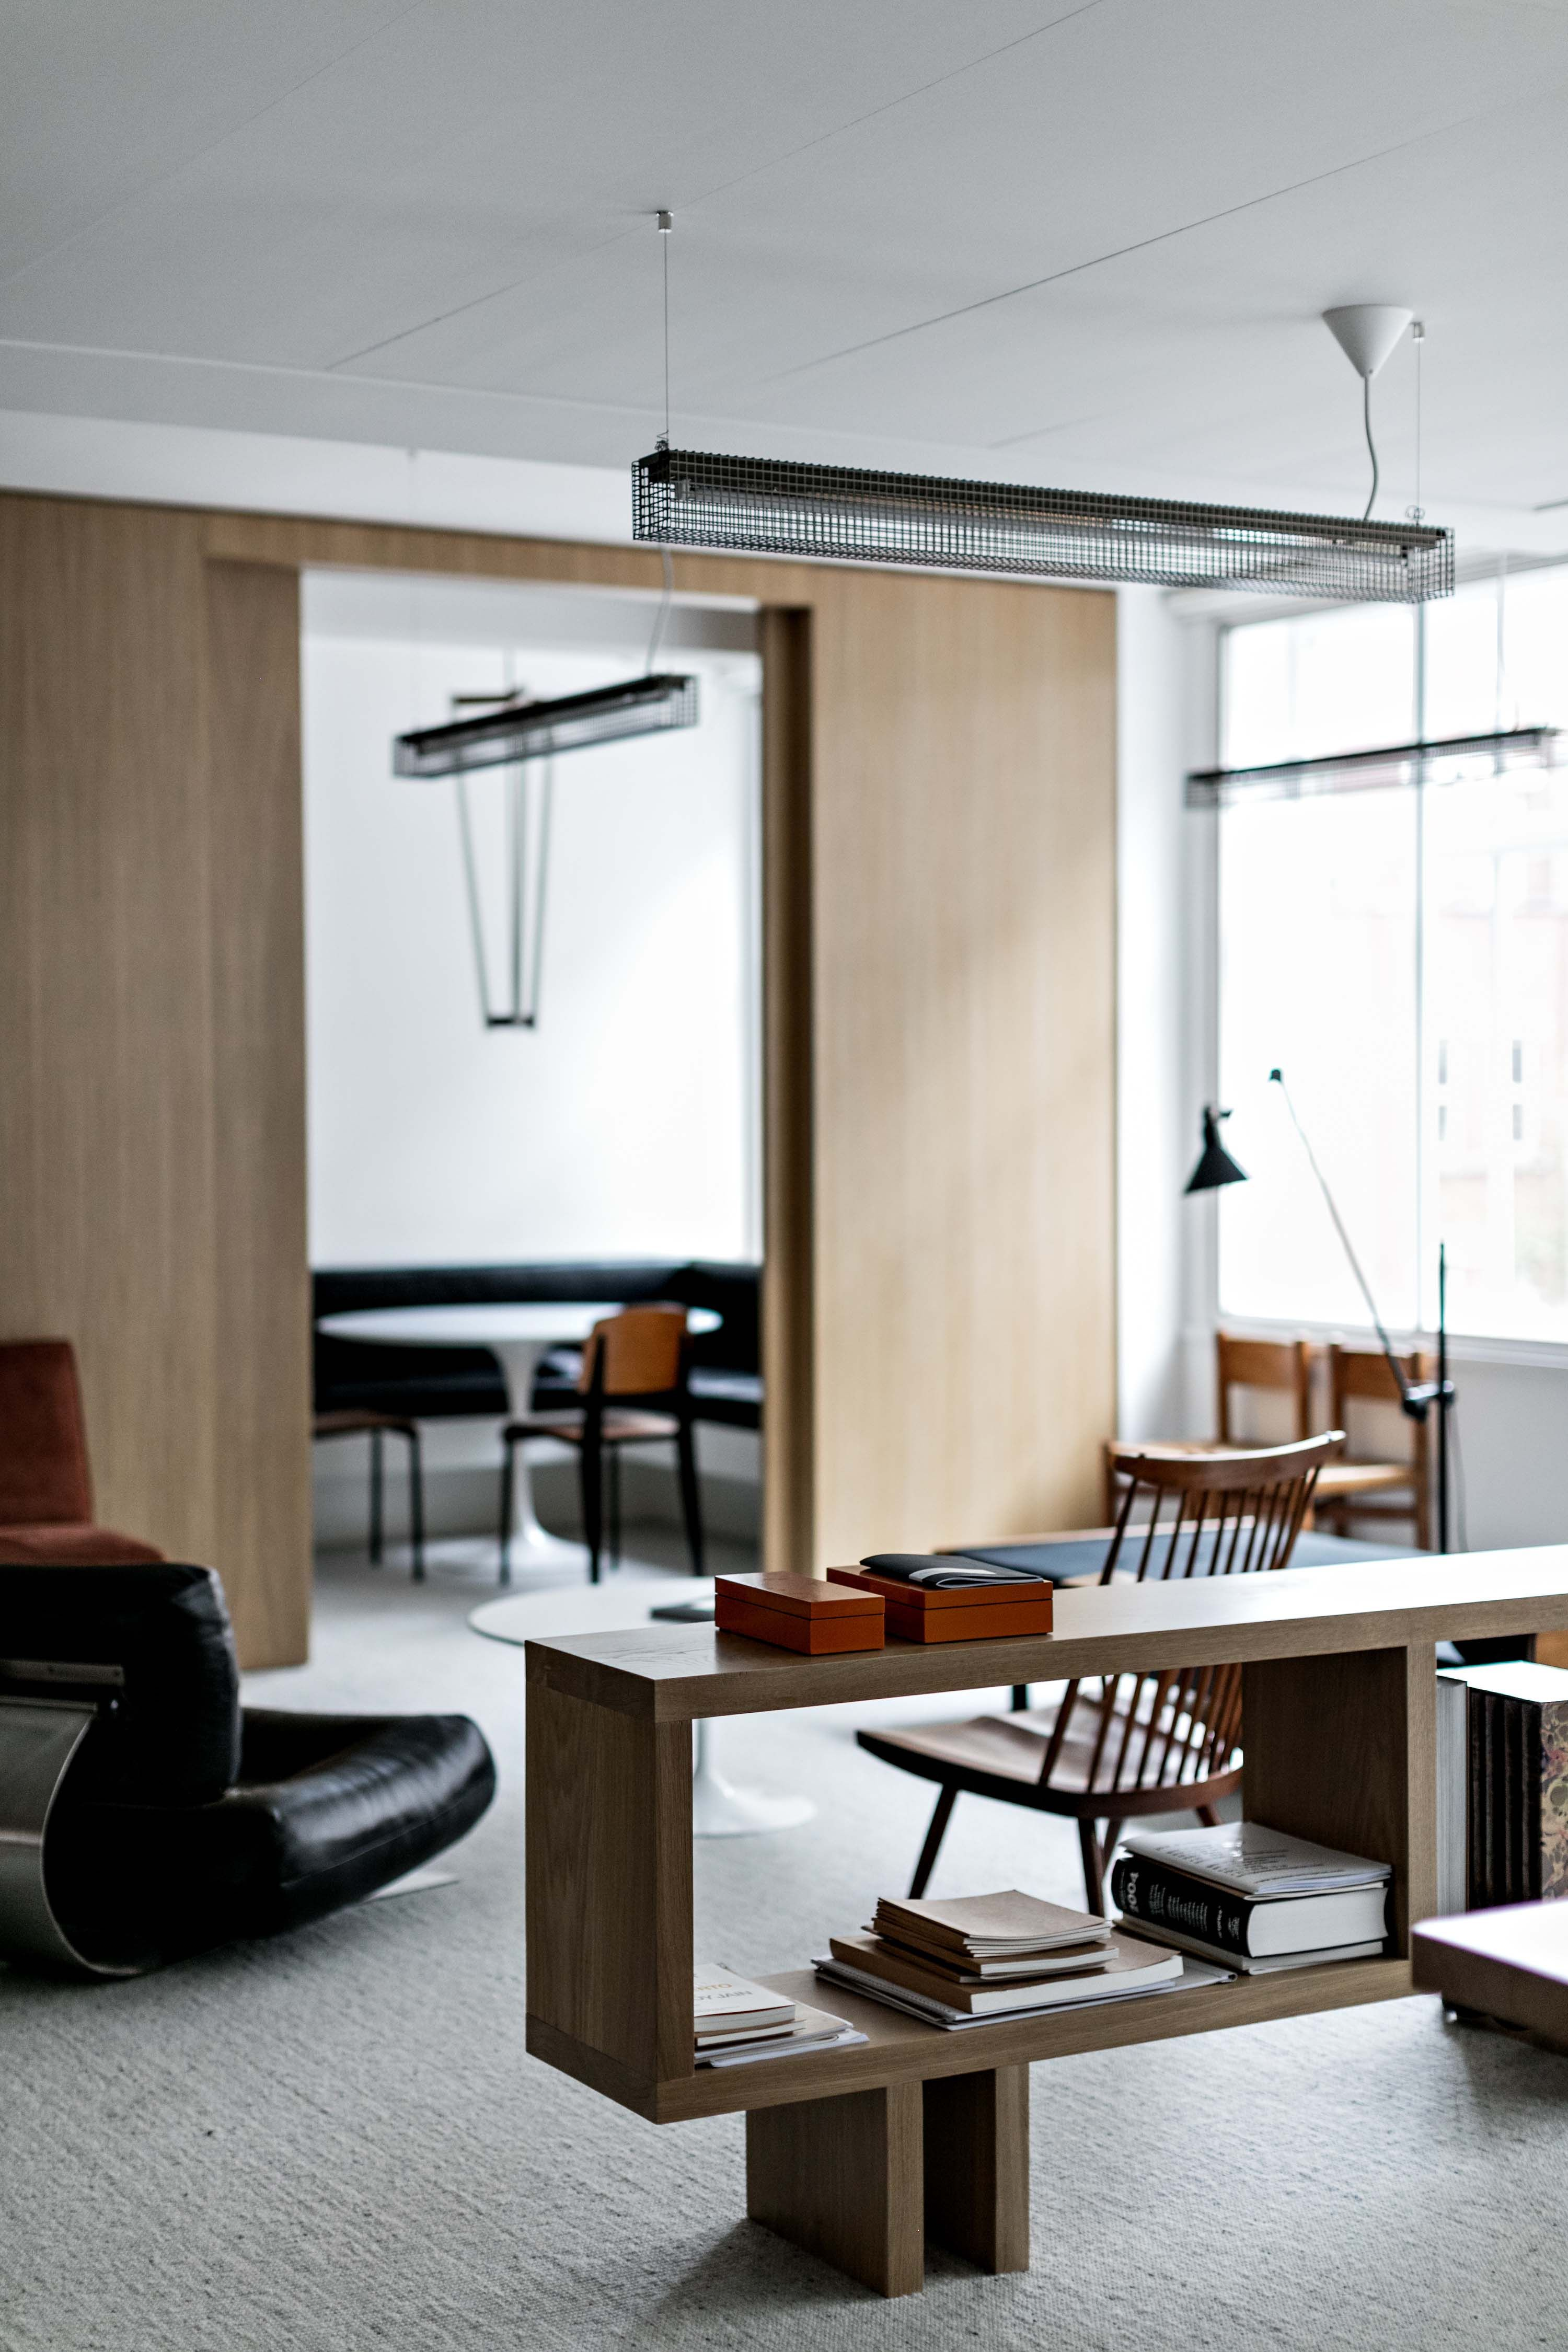 Londres Fitzrovia Interiors Office Pinterest Architecture  # Muebles Wonderfull